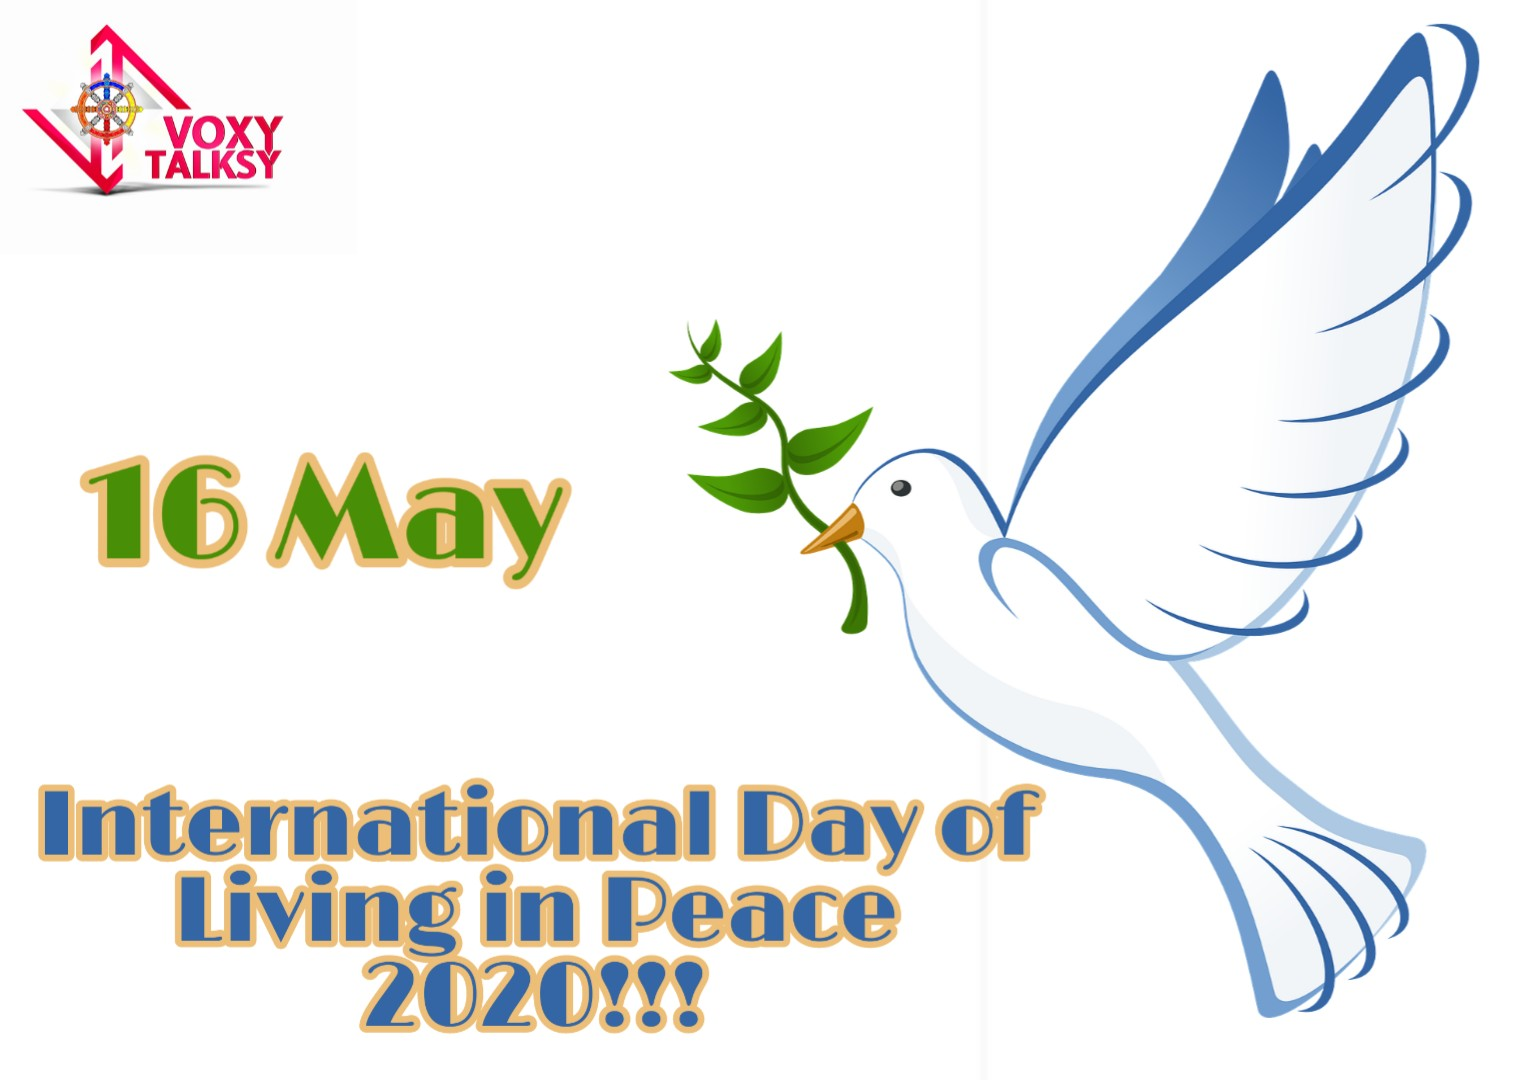 International Day of Living in Peace 2020: Quotes, Purpose